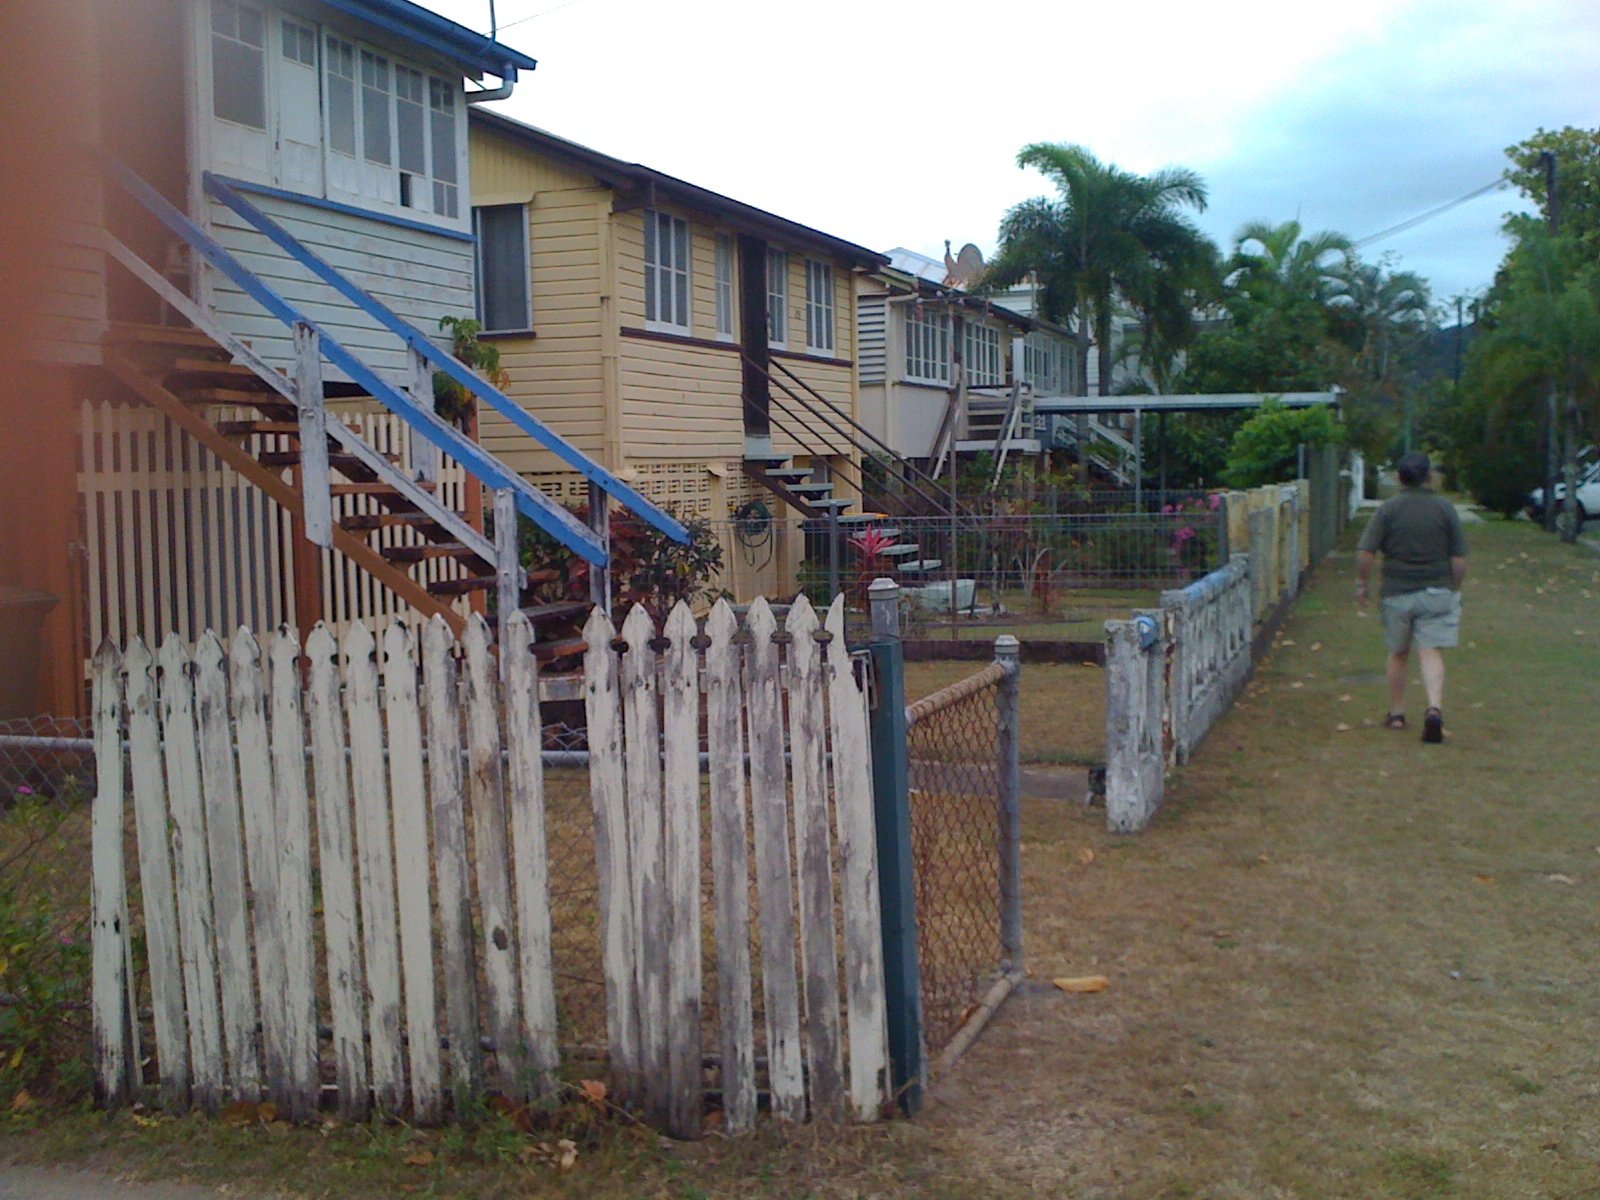 Architecture in Cairns, far north Queensland, and surrounding towns